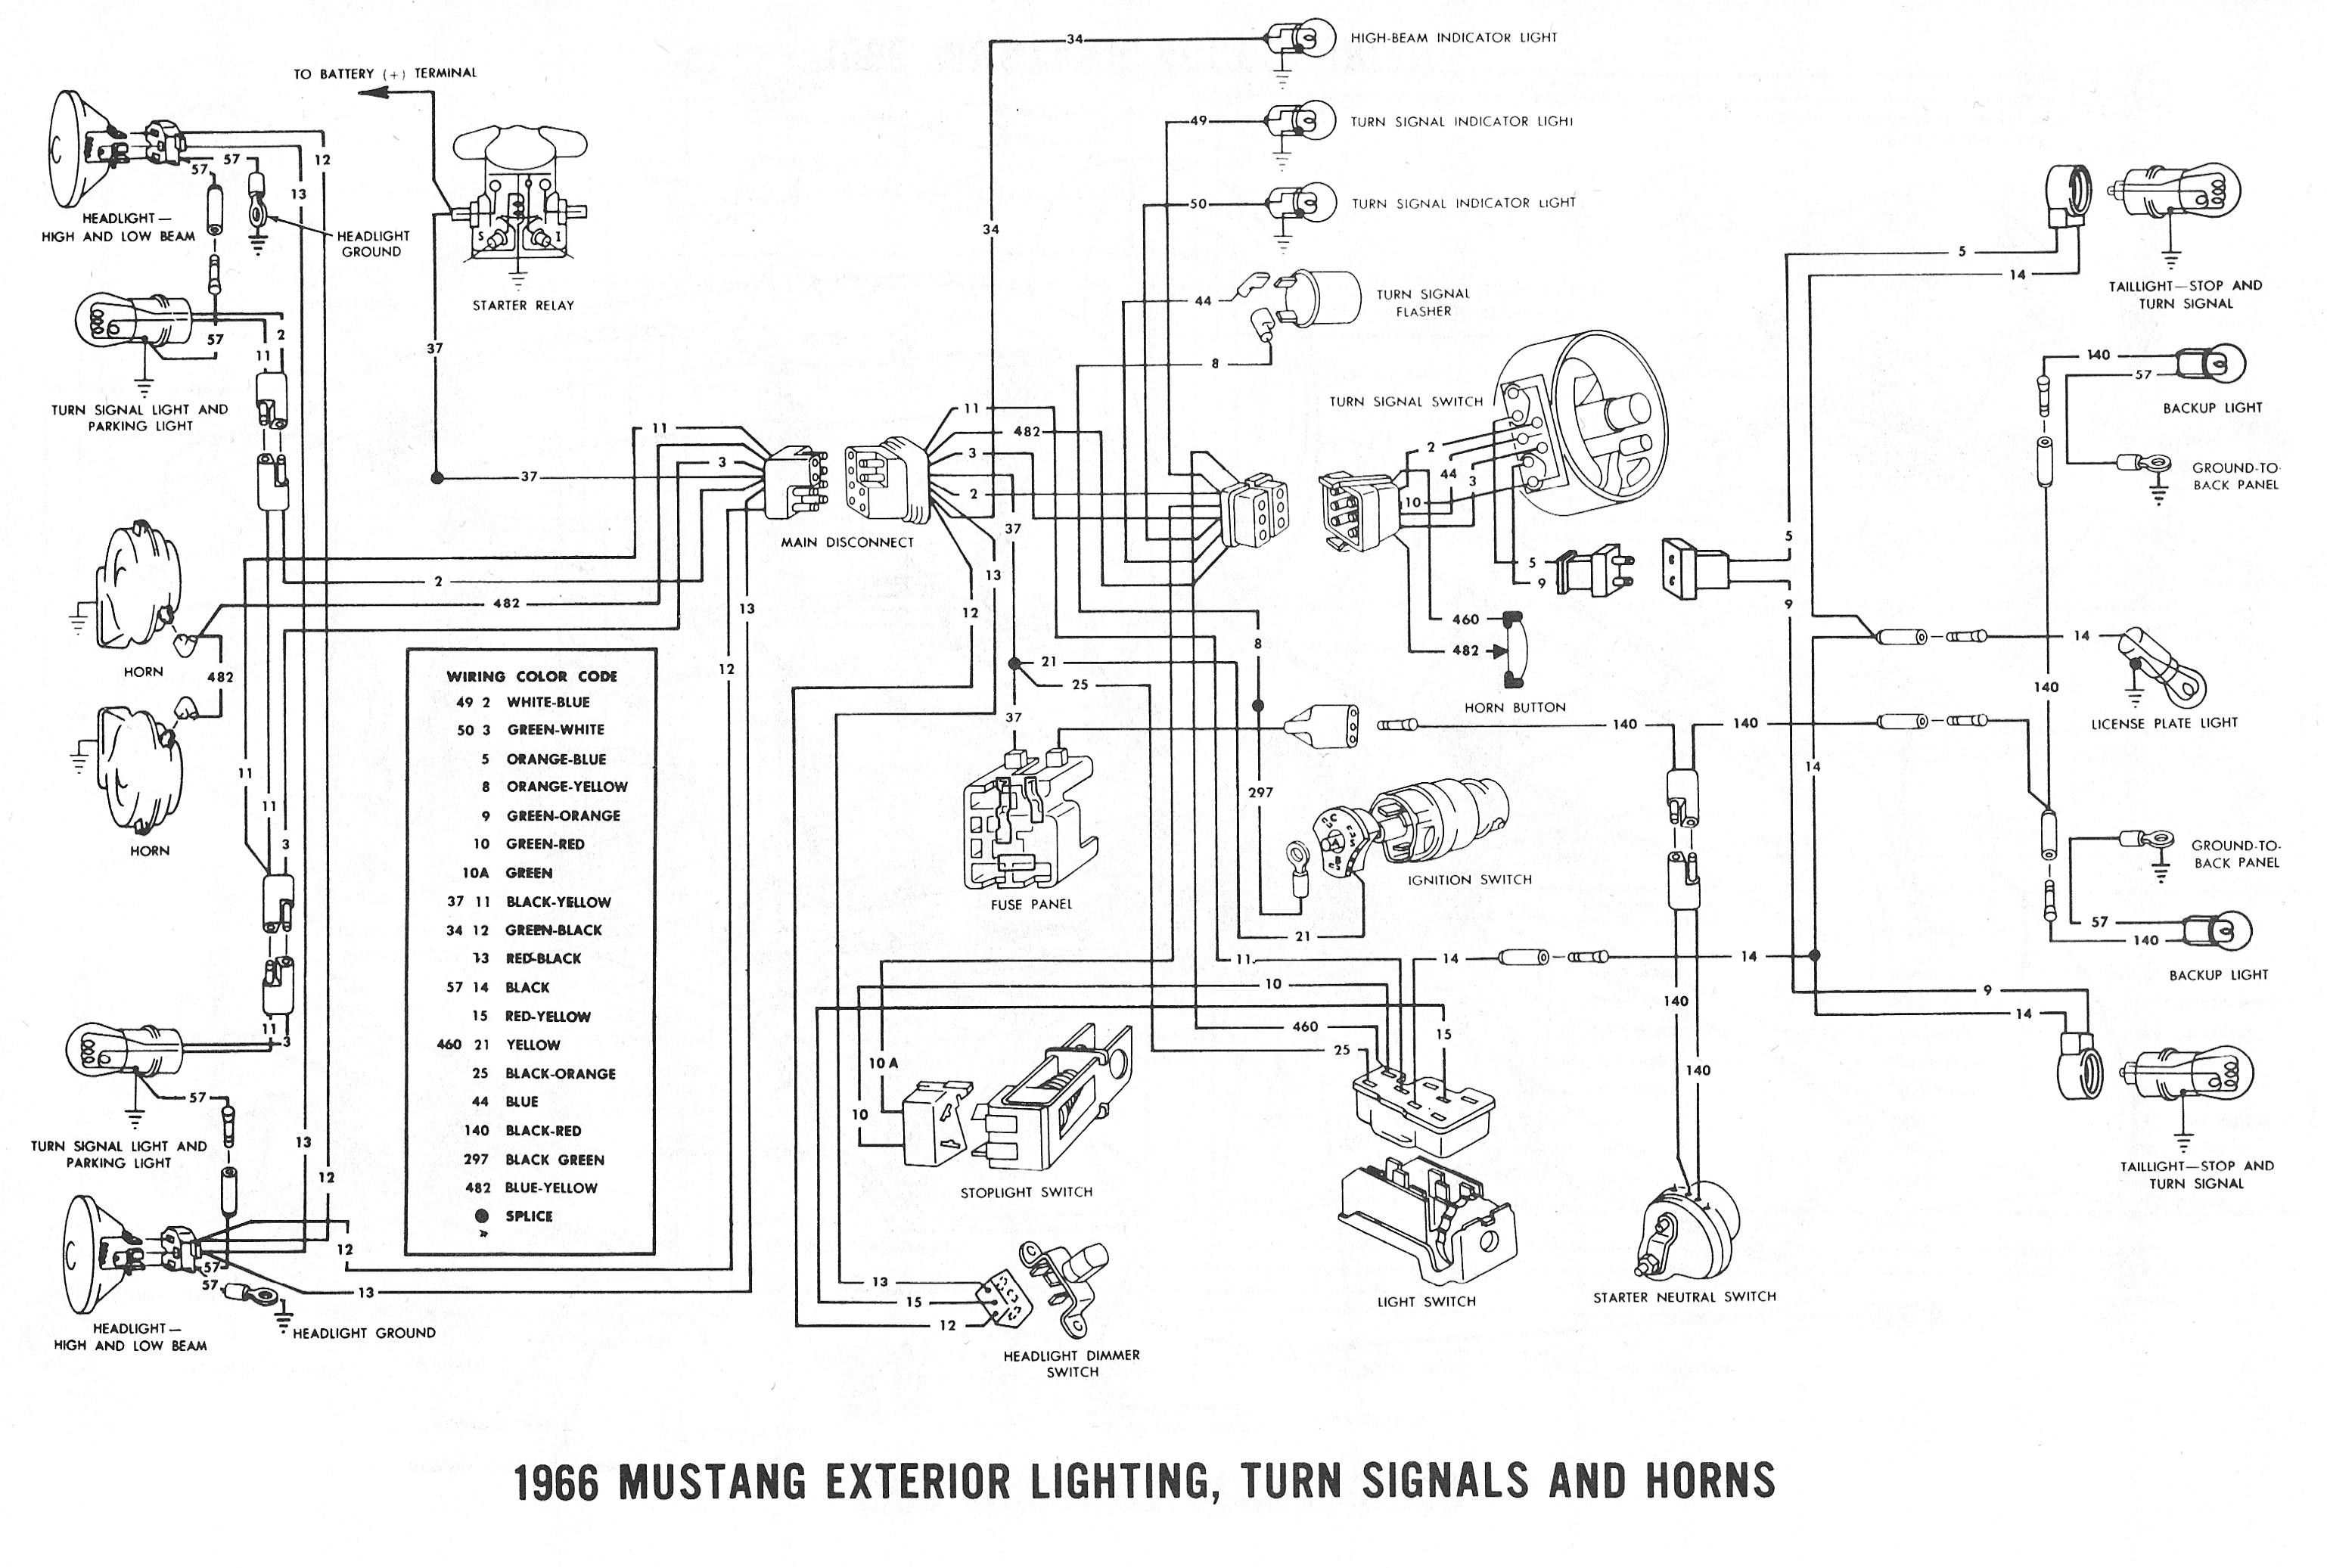 A126 1973 Ford F100 Alternator Diagram Wiring Schematic | Wiring ResourcesWiring Resources